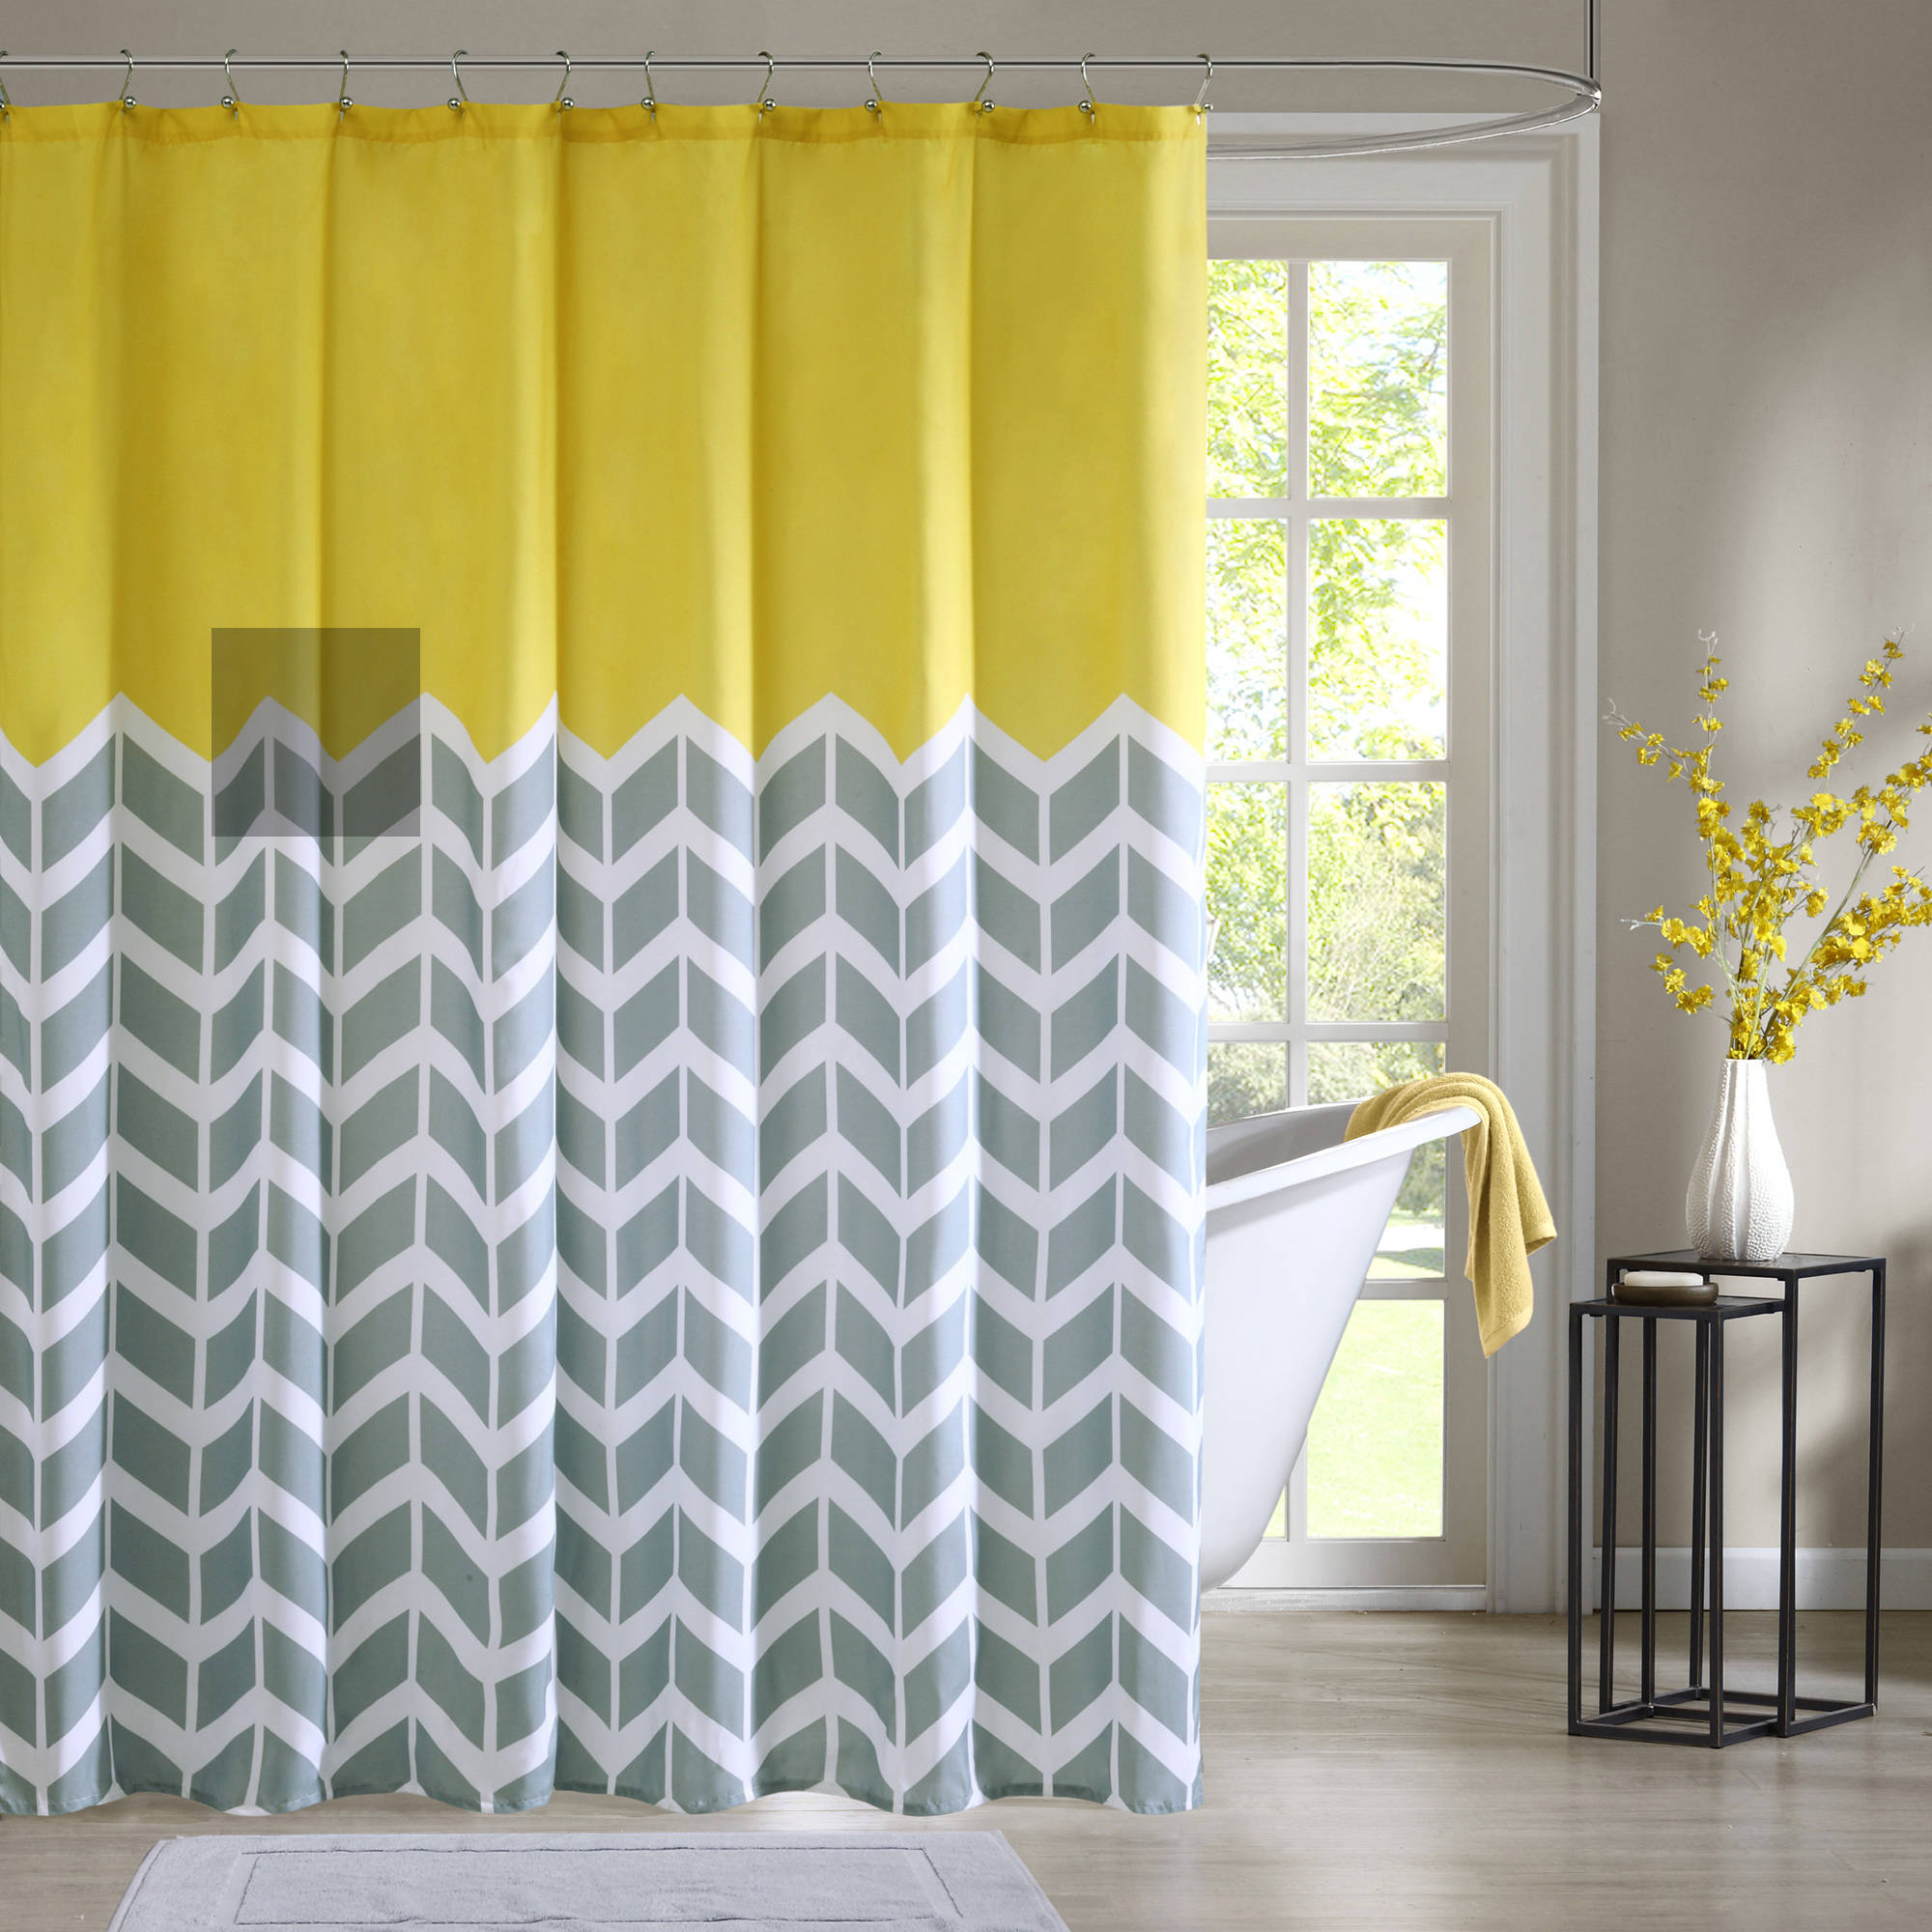 Home Essence Apartment Darcy 100% Microfiber Printed Shower Curtain    Walmart.com